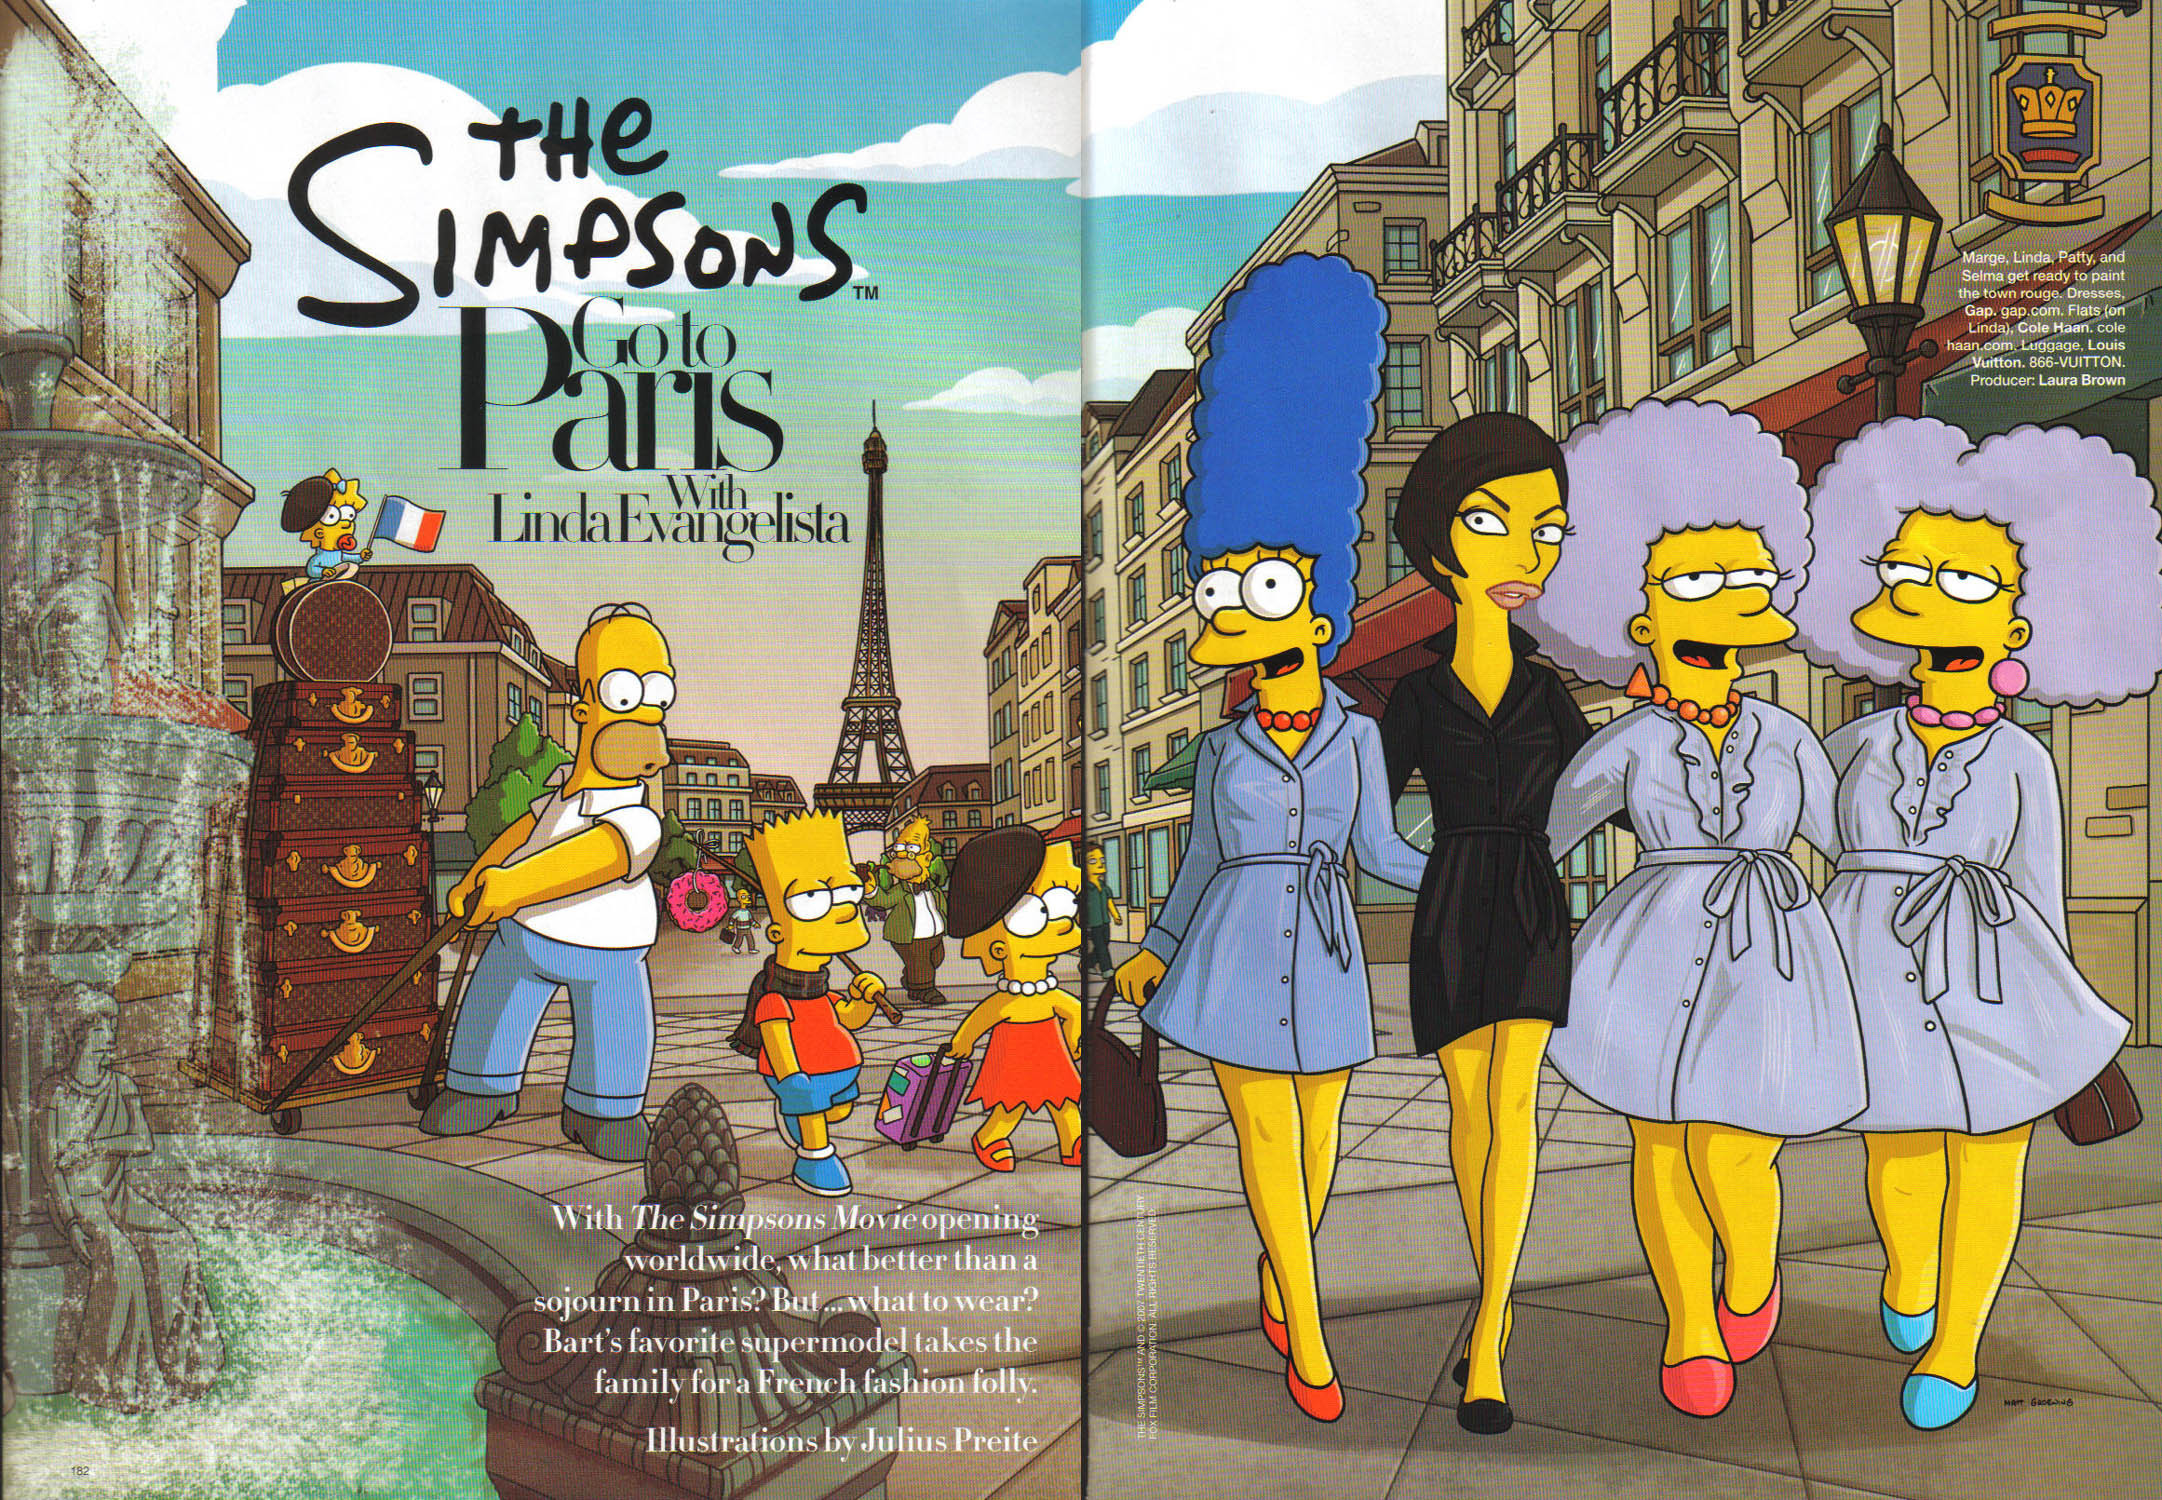 The Simpsons Simpsons Go To Paris